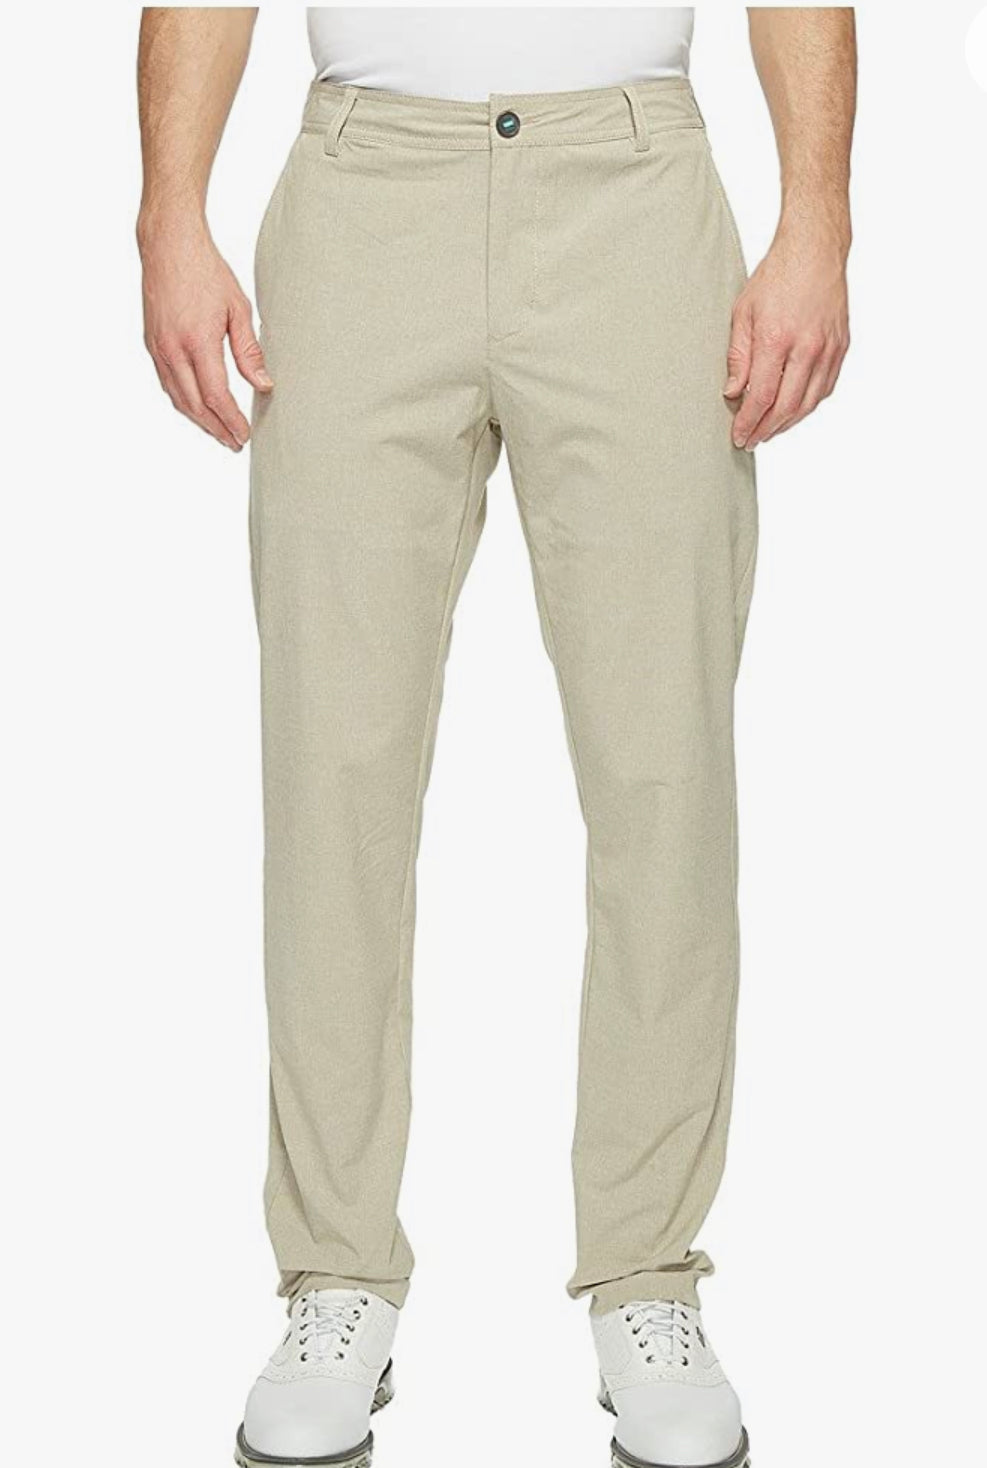 Boardwalker Pant- Khaki